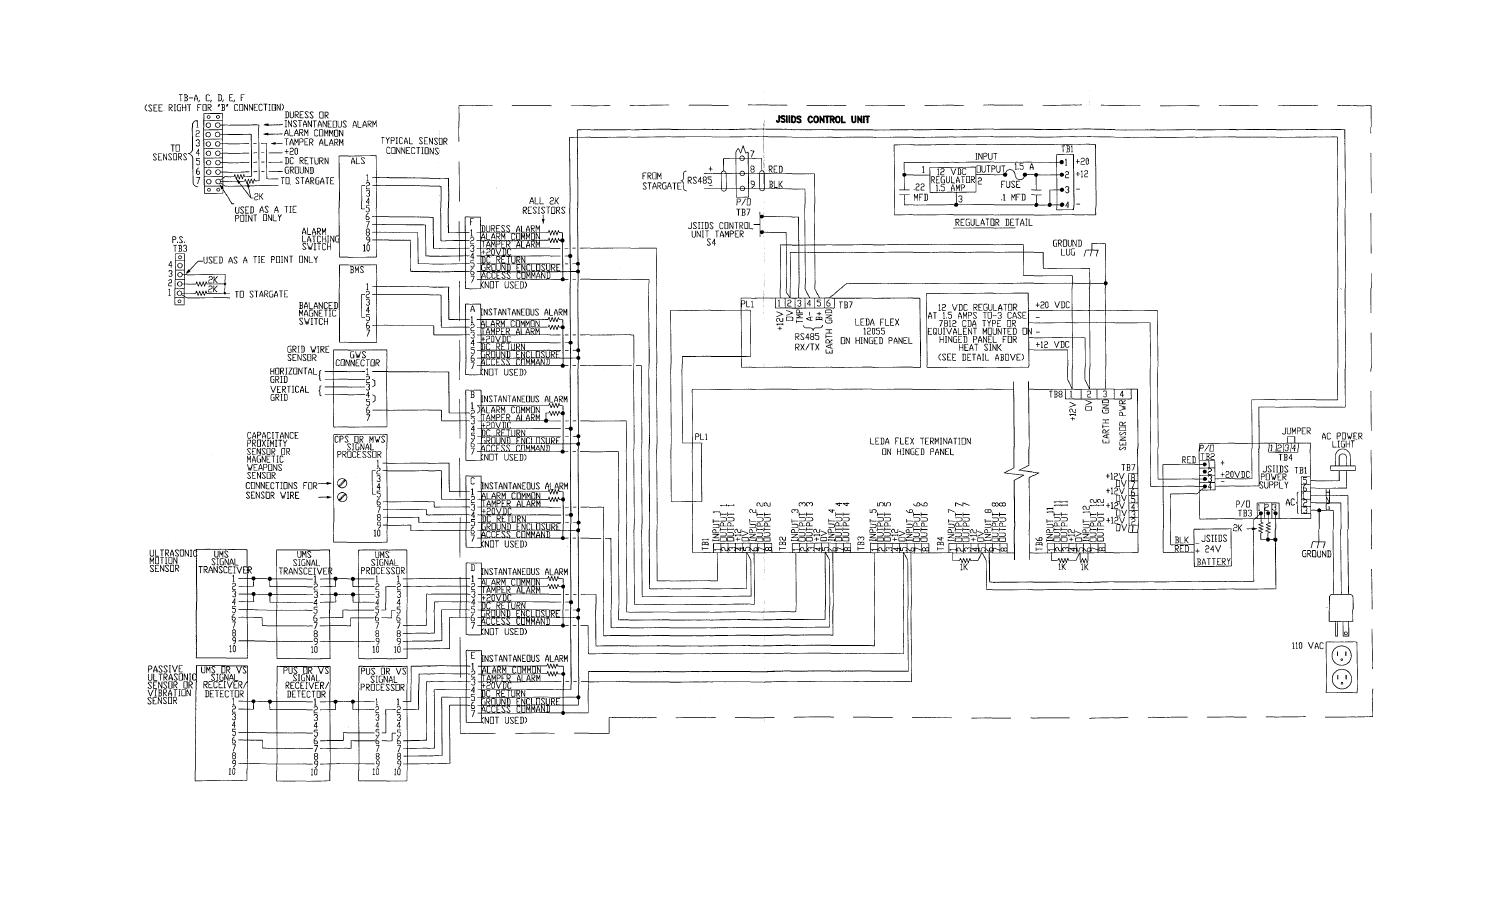 Industrial Electrical Panel Wiring Diagrams likewise Residential Electrical Wiring Diagram Symbols further Building Electrical Wiring Diagram also Residential Home Electrical Wiring Diagram in addition Industrial Electrical Wiring Diagrams. on commercial electrical wiring diagrams